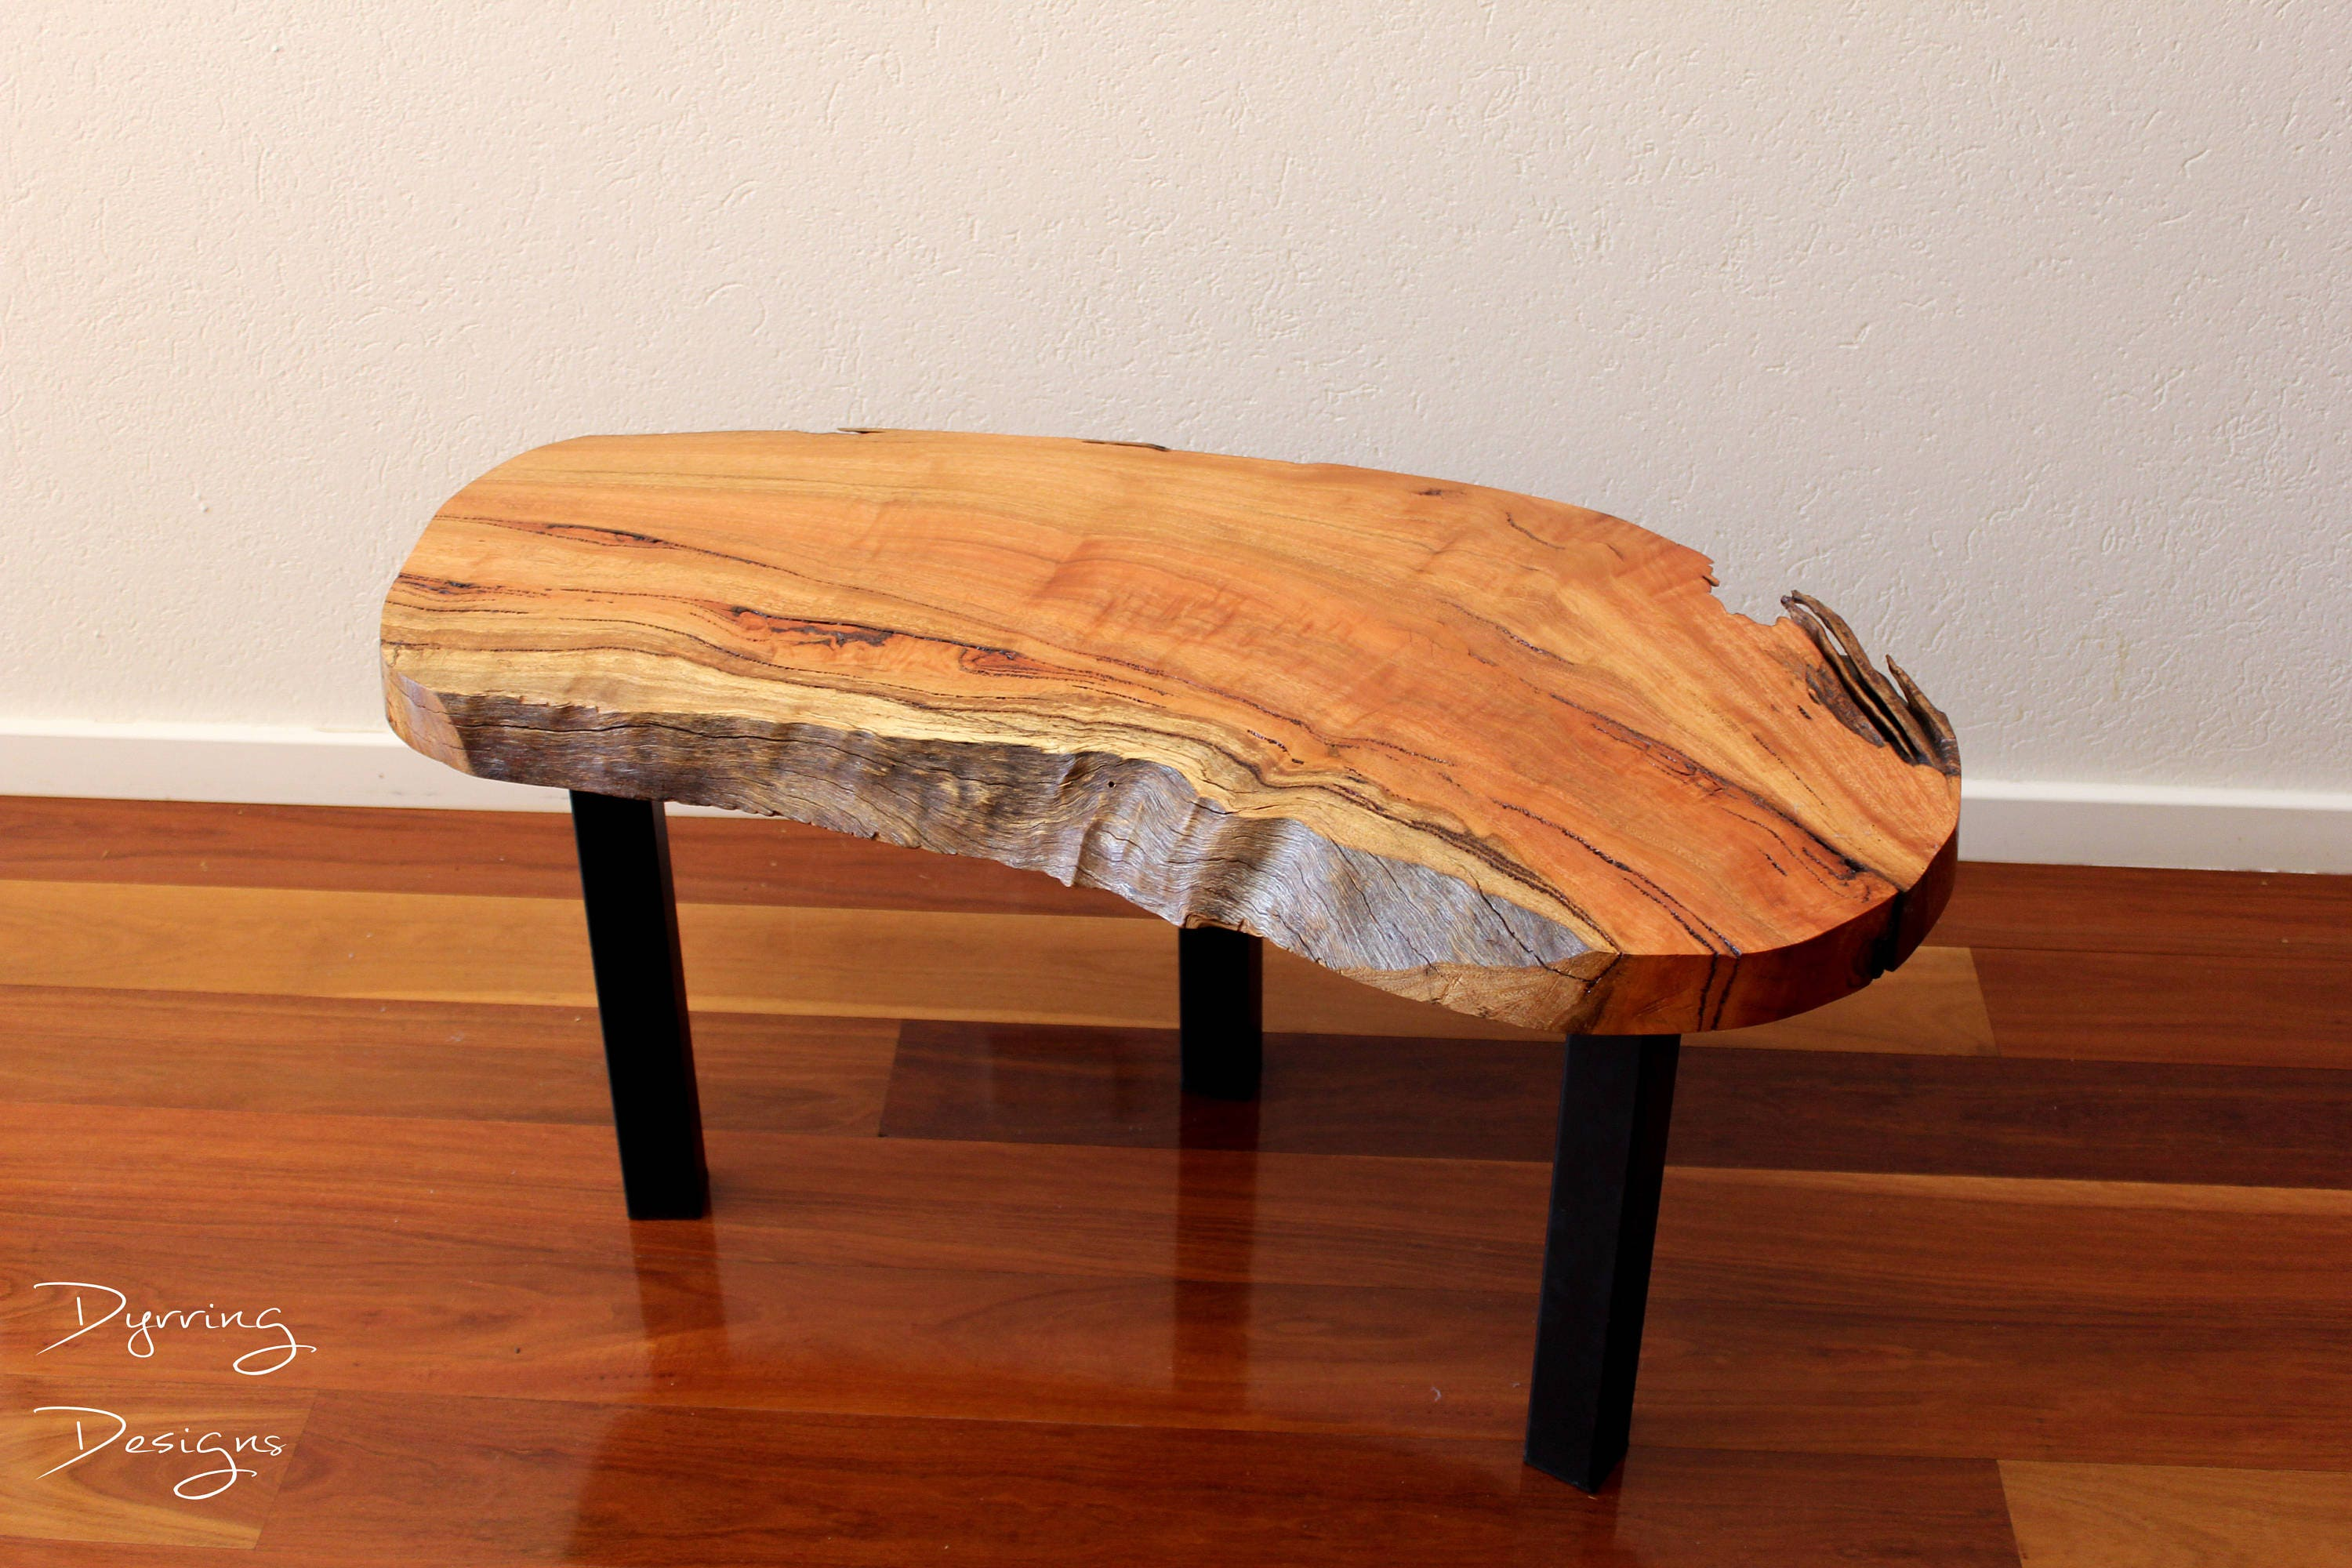 The Australian Outback Ghost Gum Coffee Table